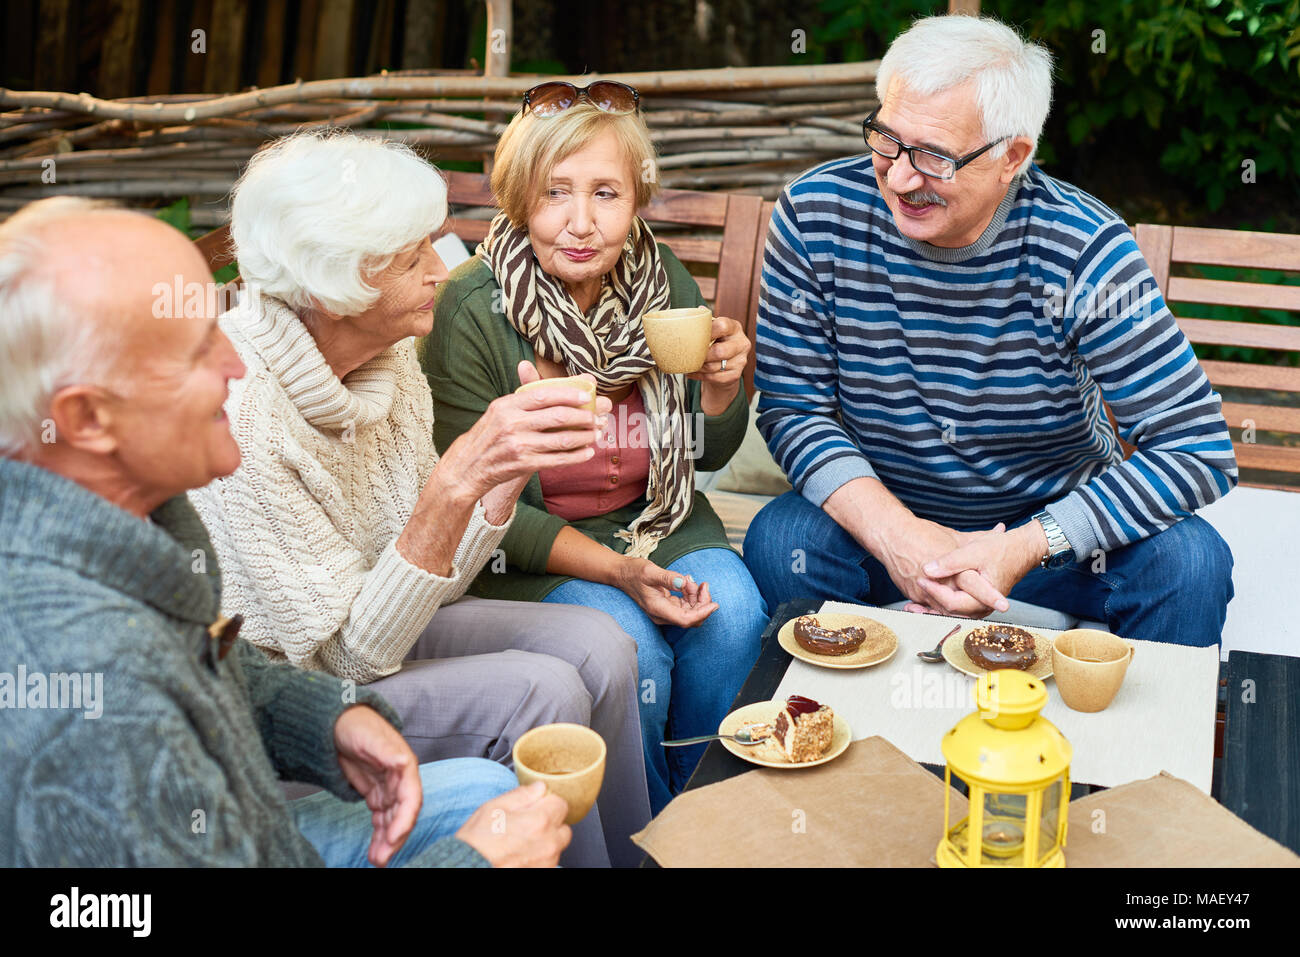 Senior Friends in Cafe - Stock Image